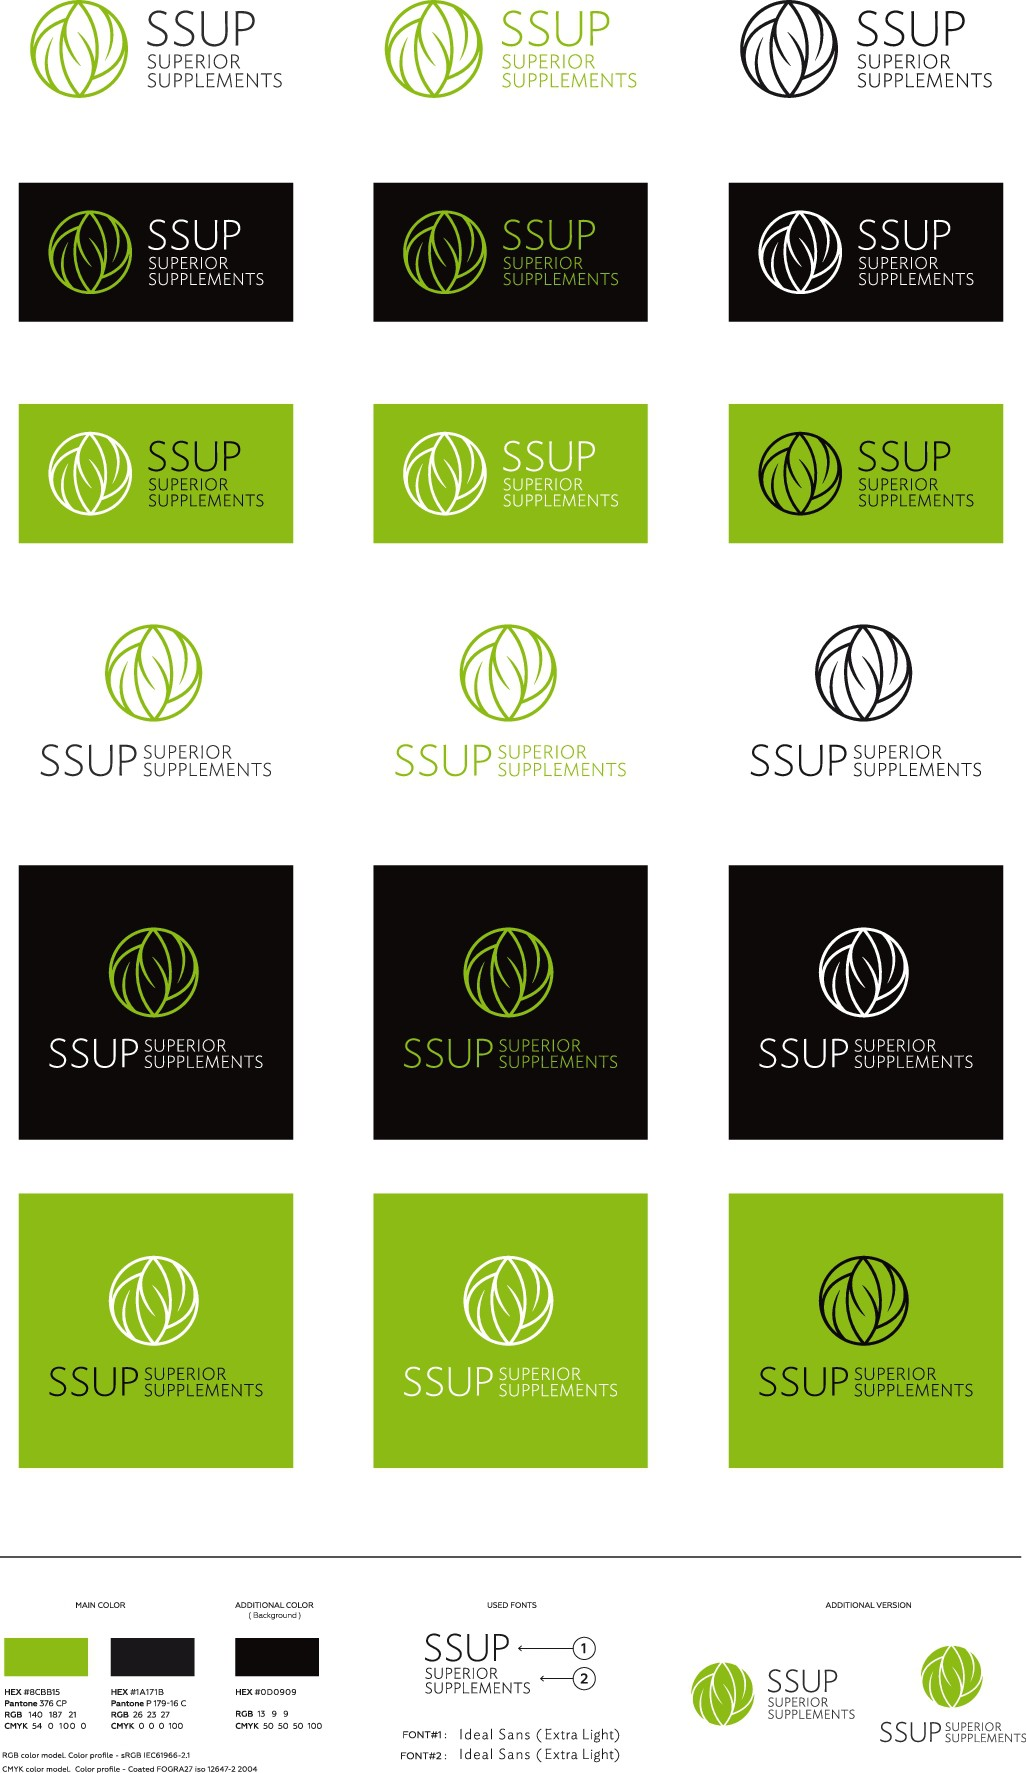 Who will design our 'Ssup. logo and house-style?